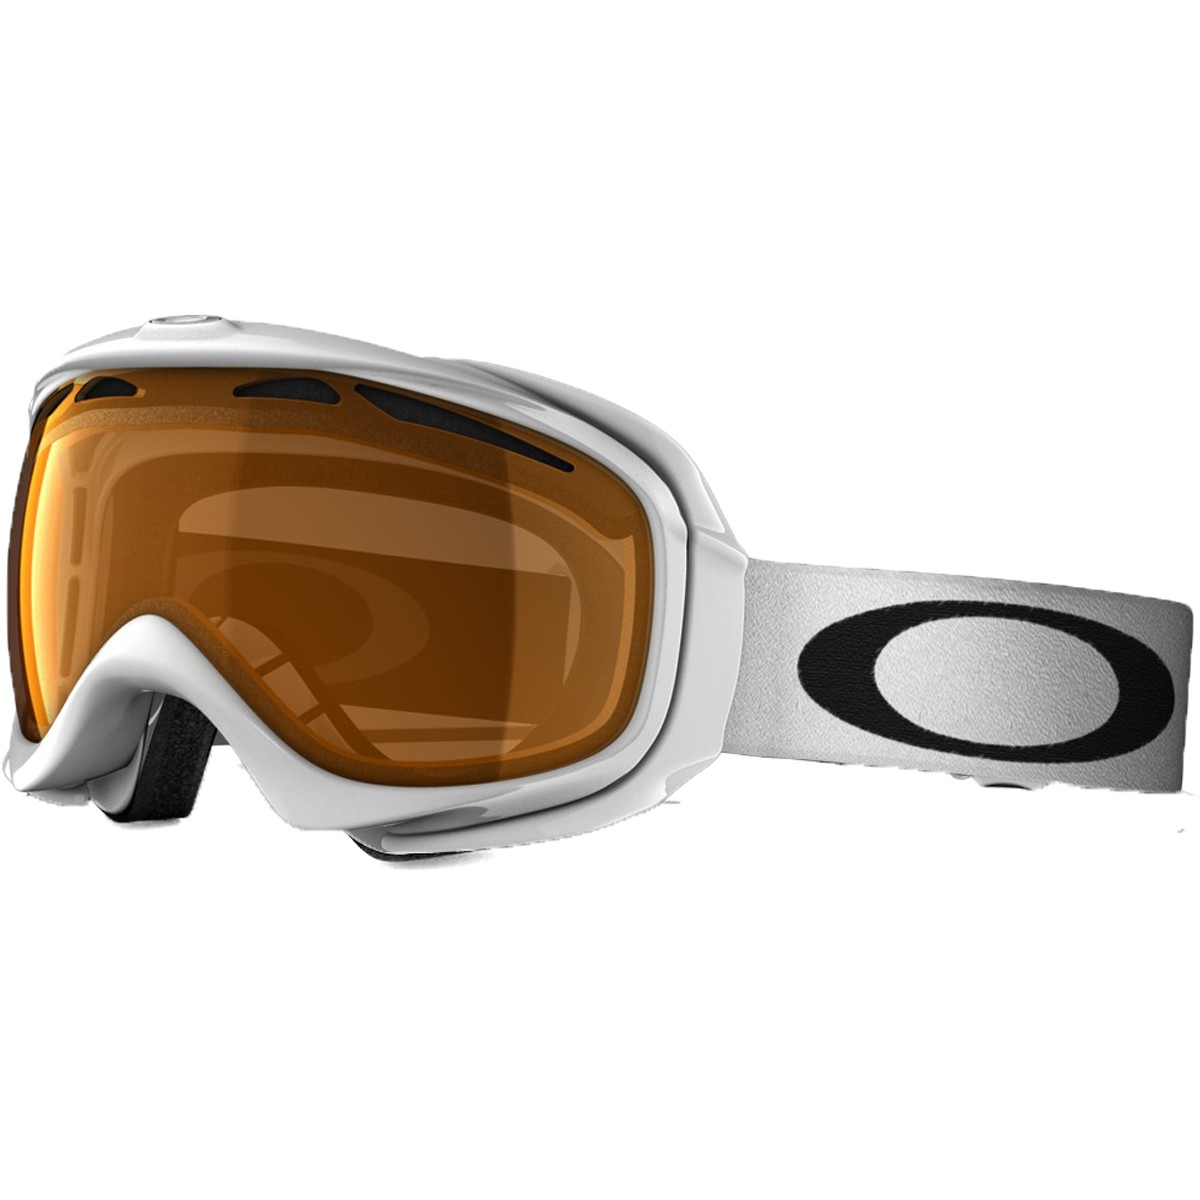 Oakley Elevate Snowboard Goggles 2015 - Polished White - Persimmon